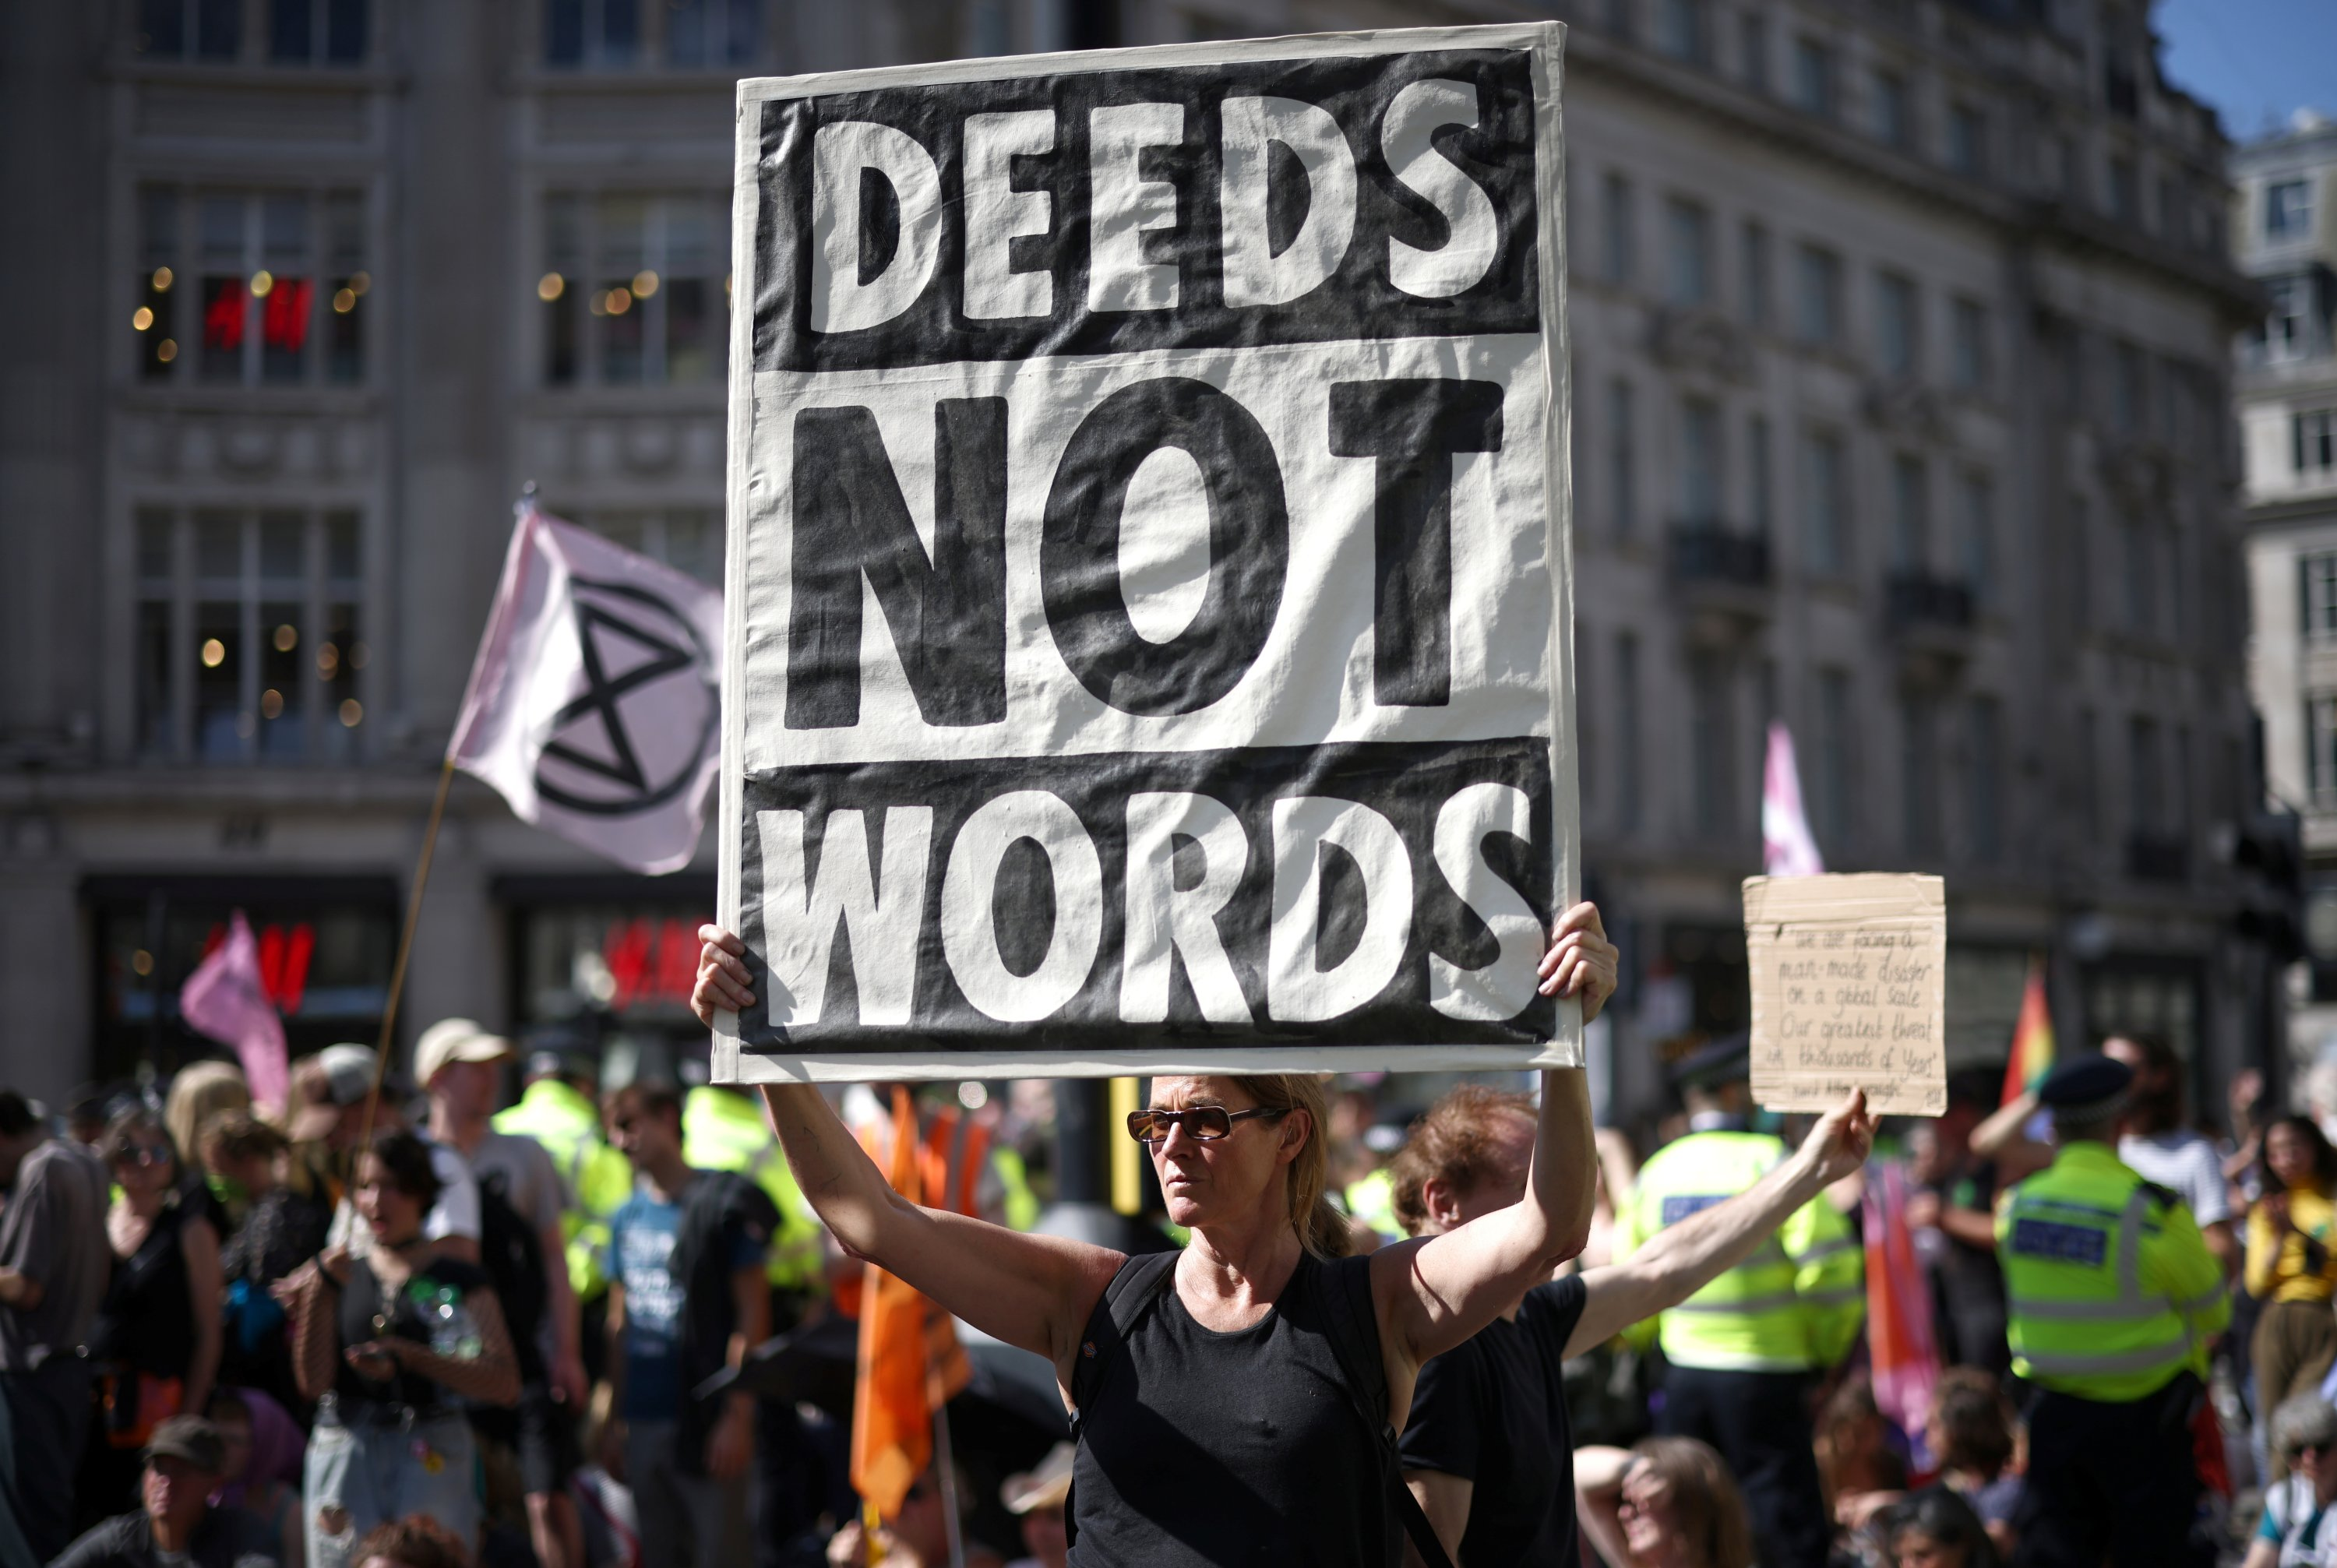 Demonstrators hold placards during an Extinction Rebellion climate activists' protest, at Oxford Circus, in London, Britain, Aug. 25, 2021. (Reuters Photo)